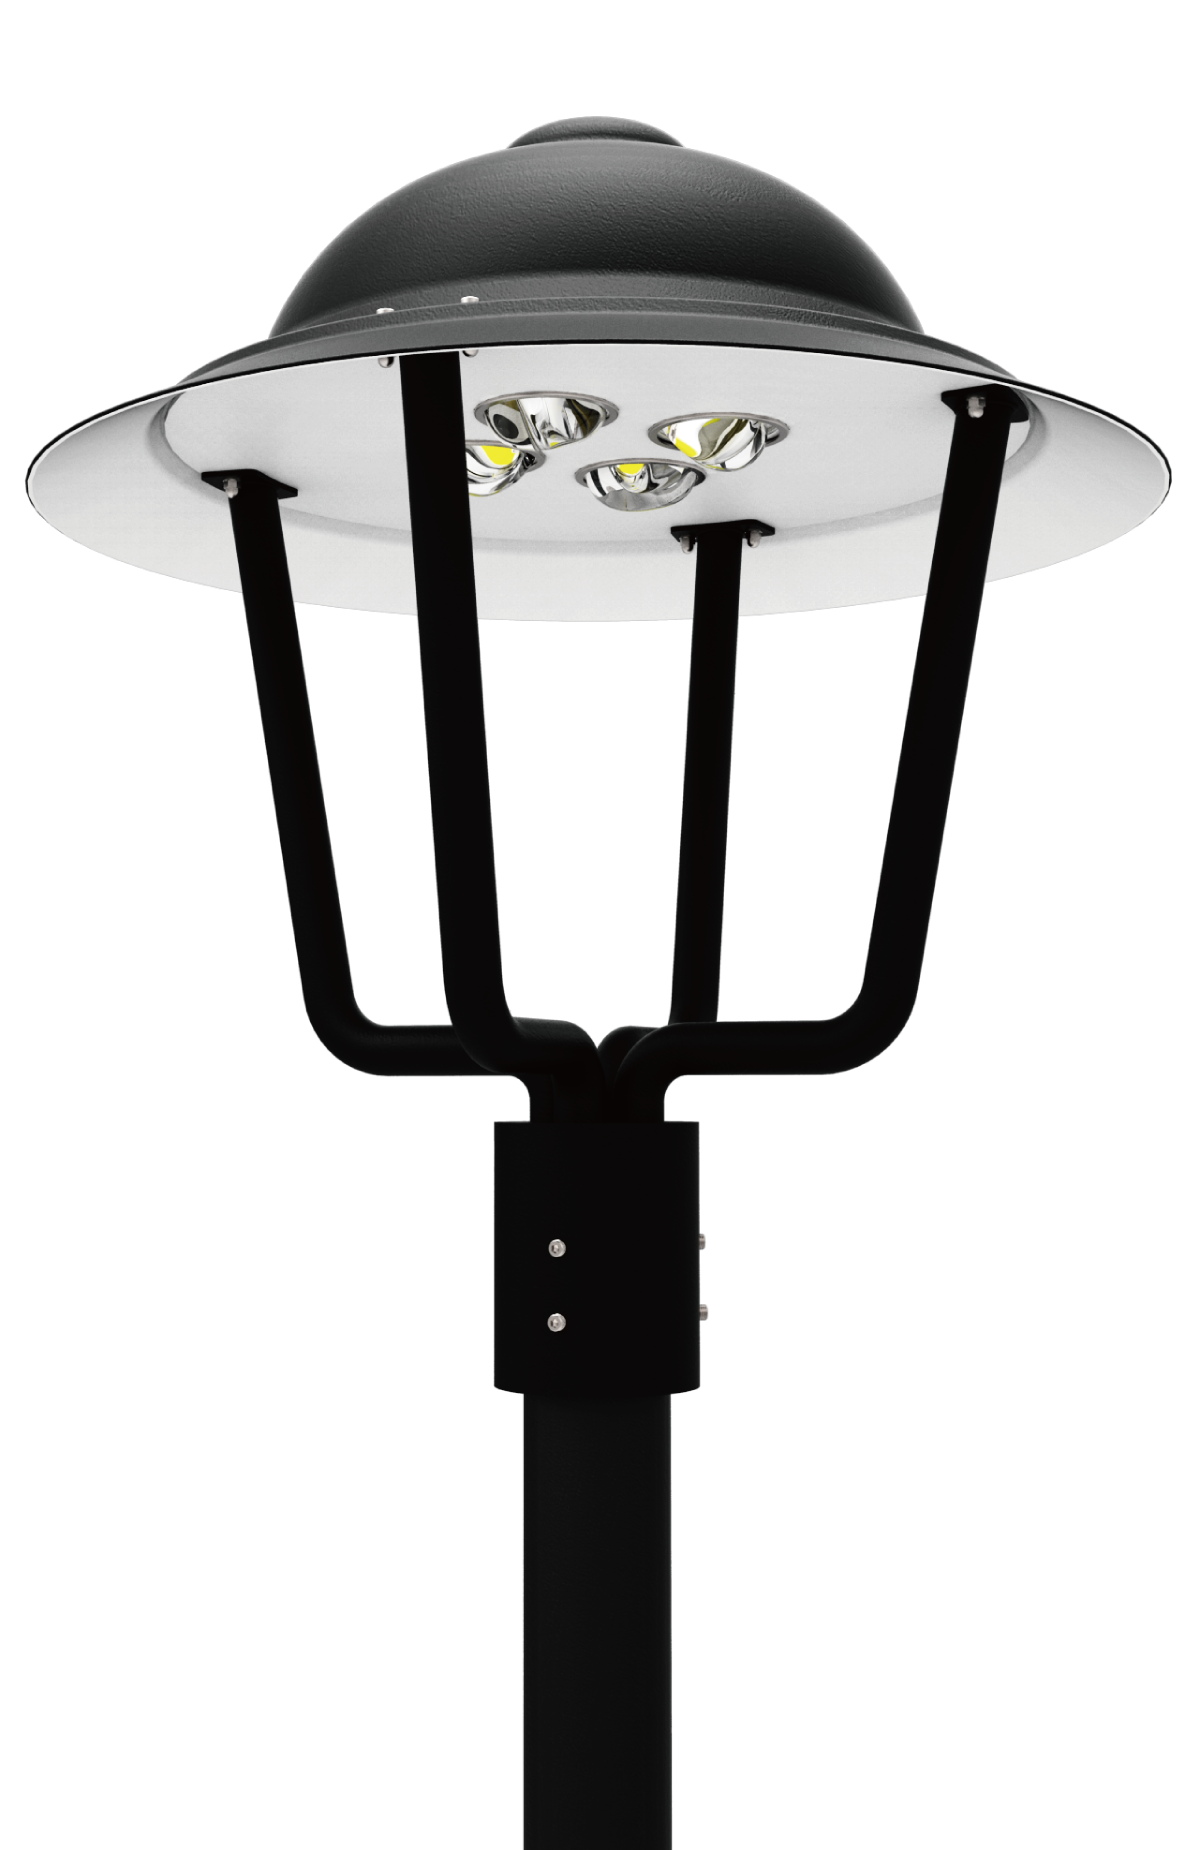 led pt 110 series led post top area light fixtures. Black Bedroom Furniture Sets. Home Design Ideas